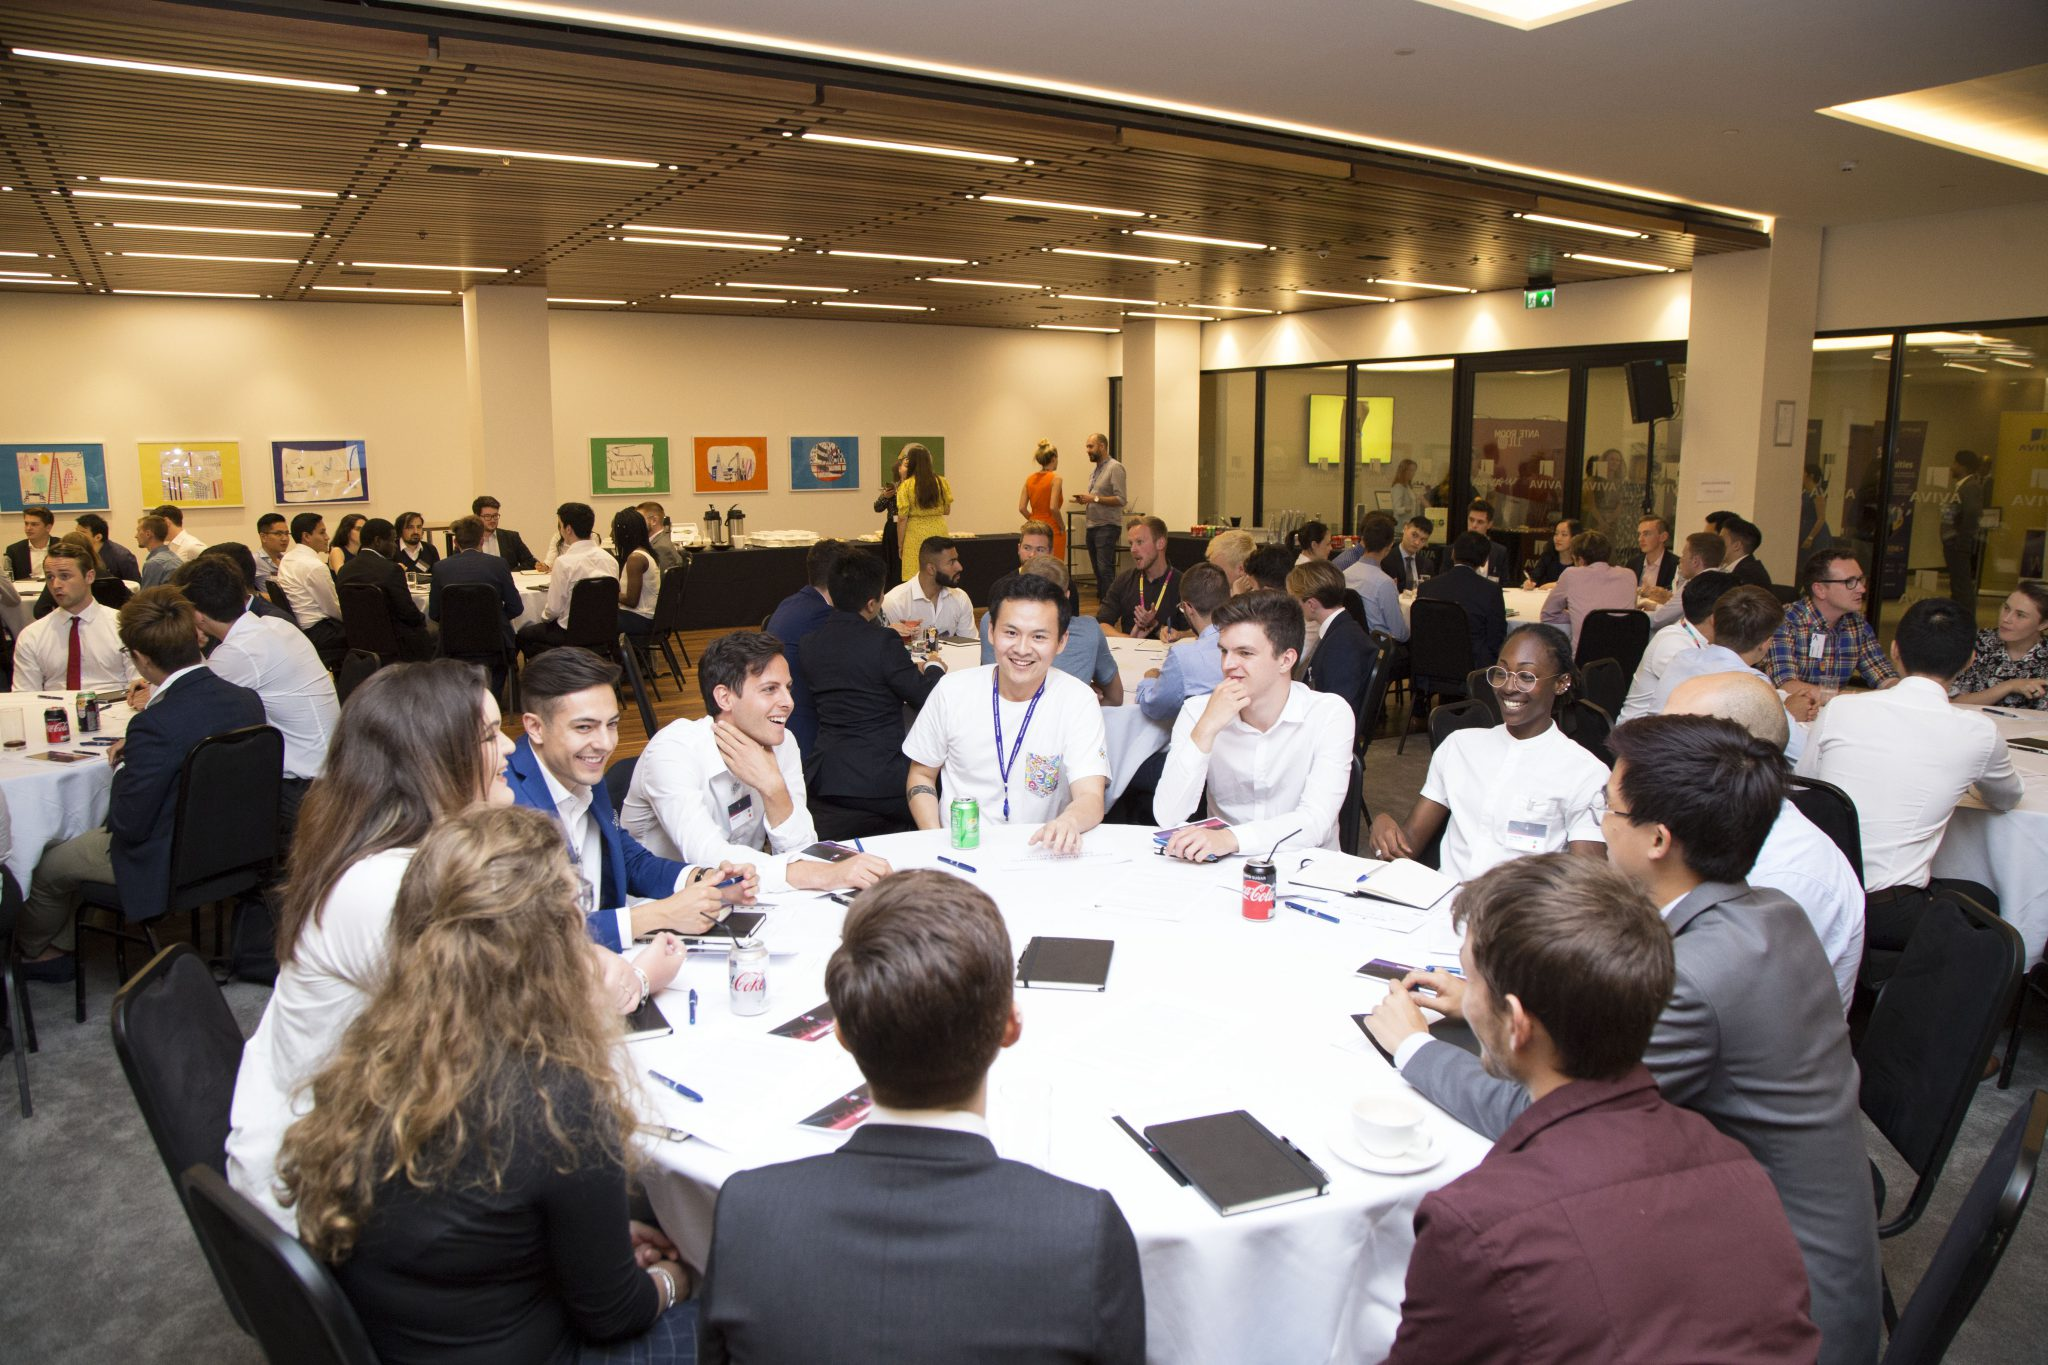 Group of students sitting around a table and engaging in conversation at an AuthentiCity event